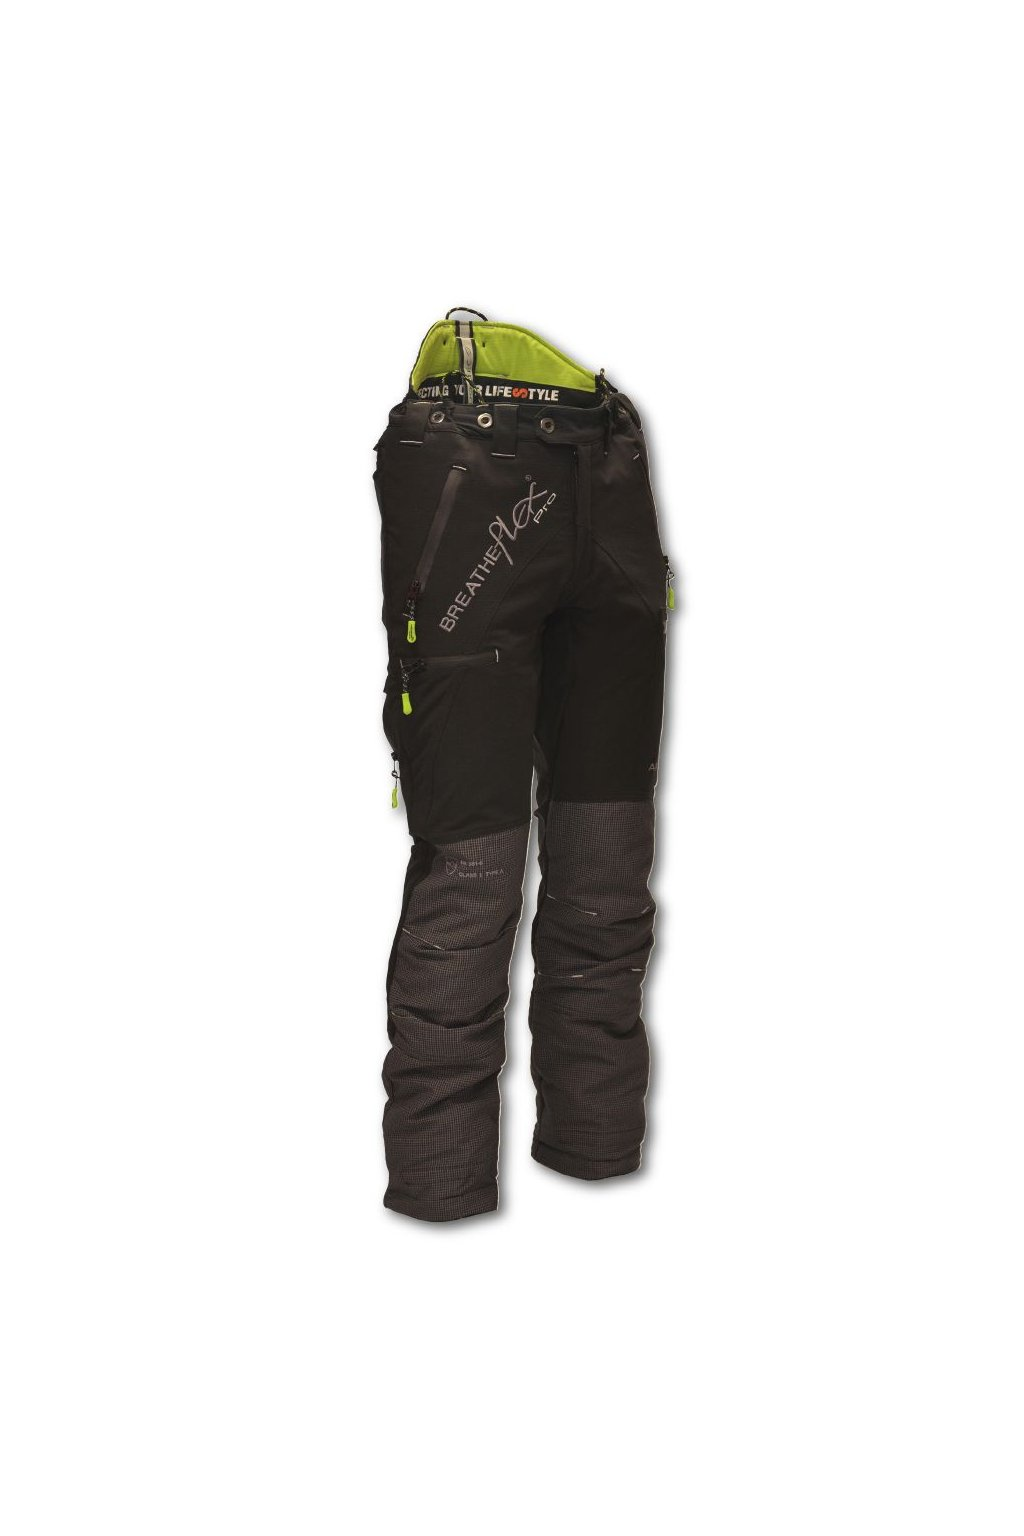 at4060 at4070 class 1 black breatheflex pro chainsaw trousers